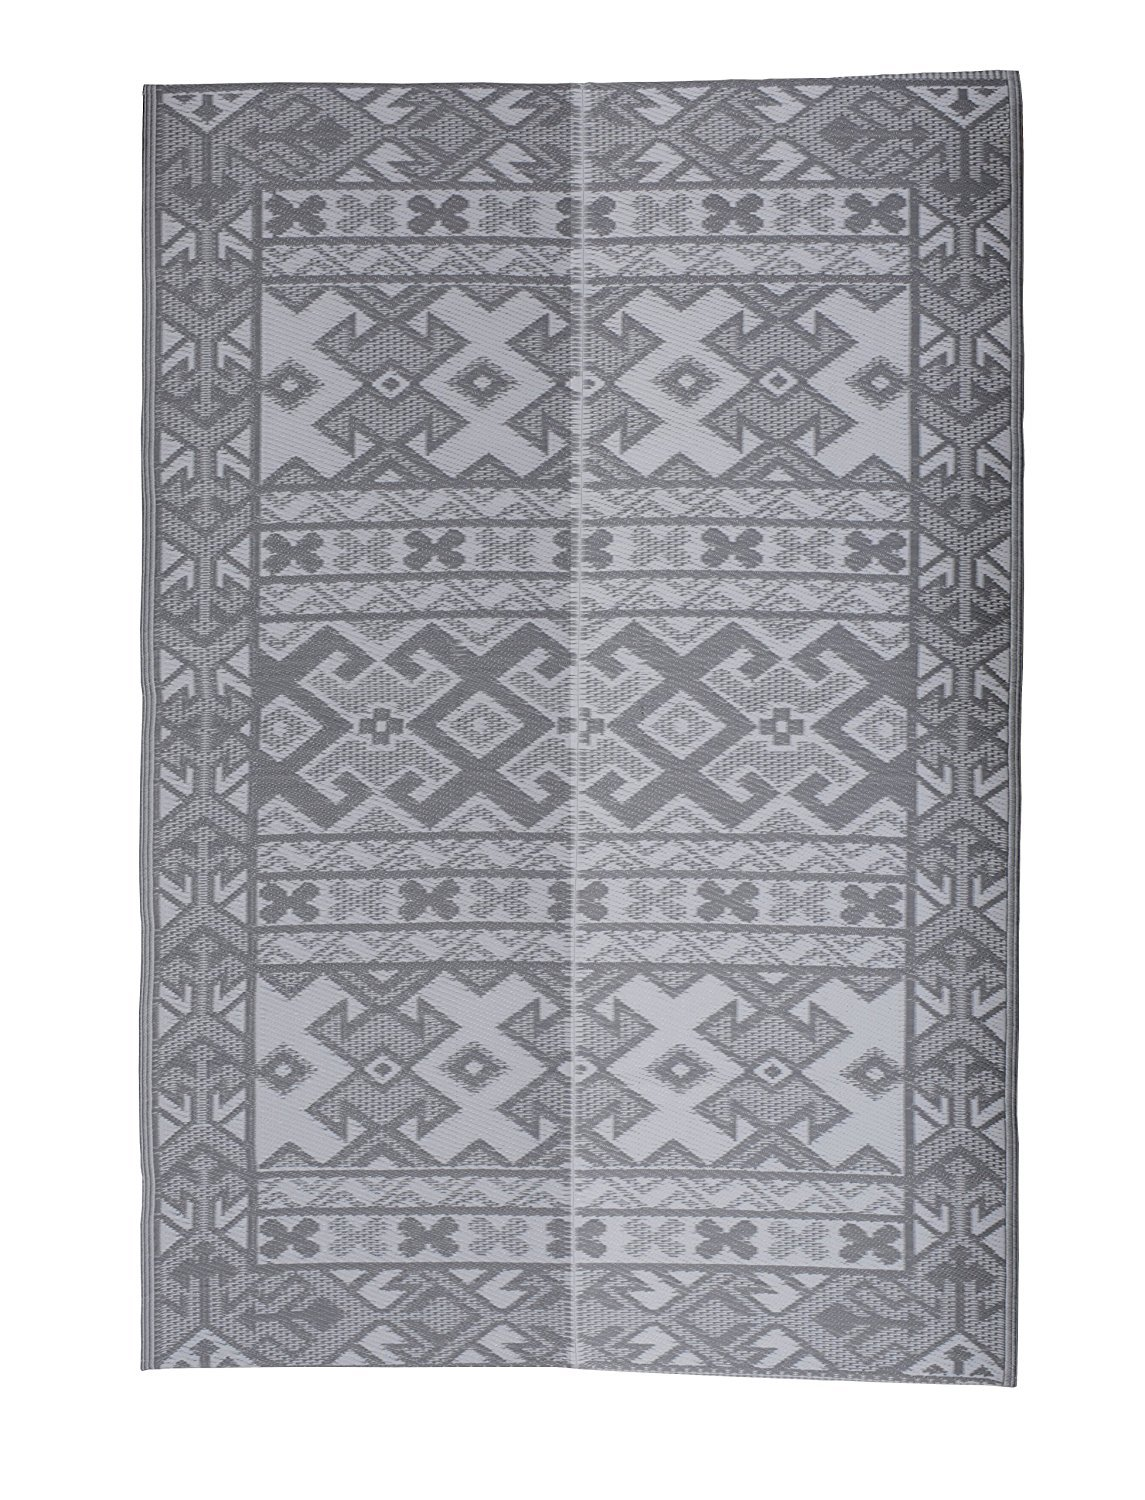 SAVON Southwest Rug, Outdoor Mat, Sleeping Mat, Camping Mat, Beach Mat, Gray Indoor Carpet